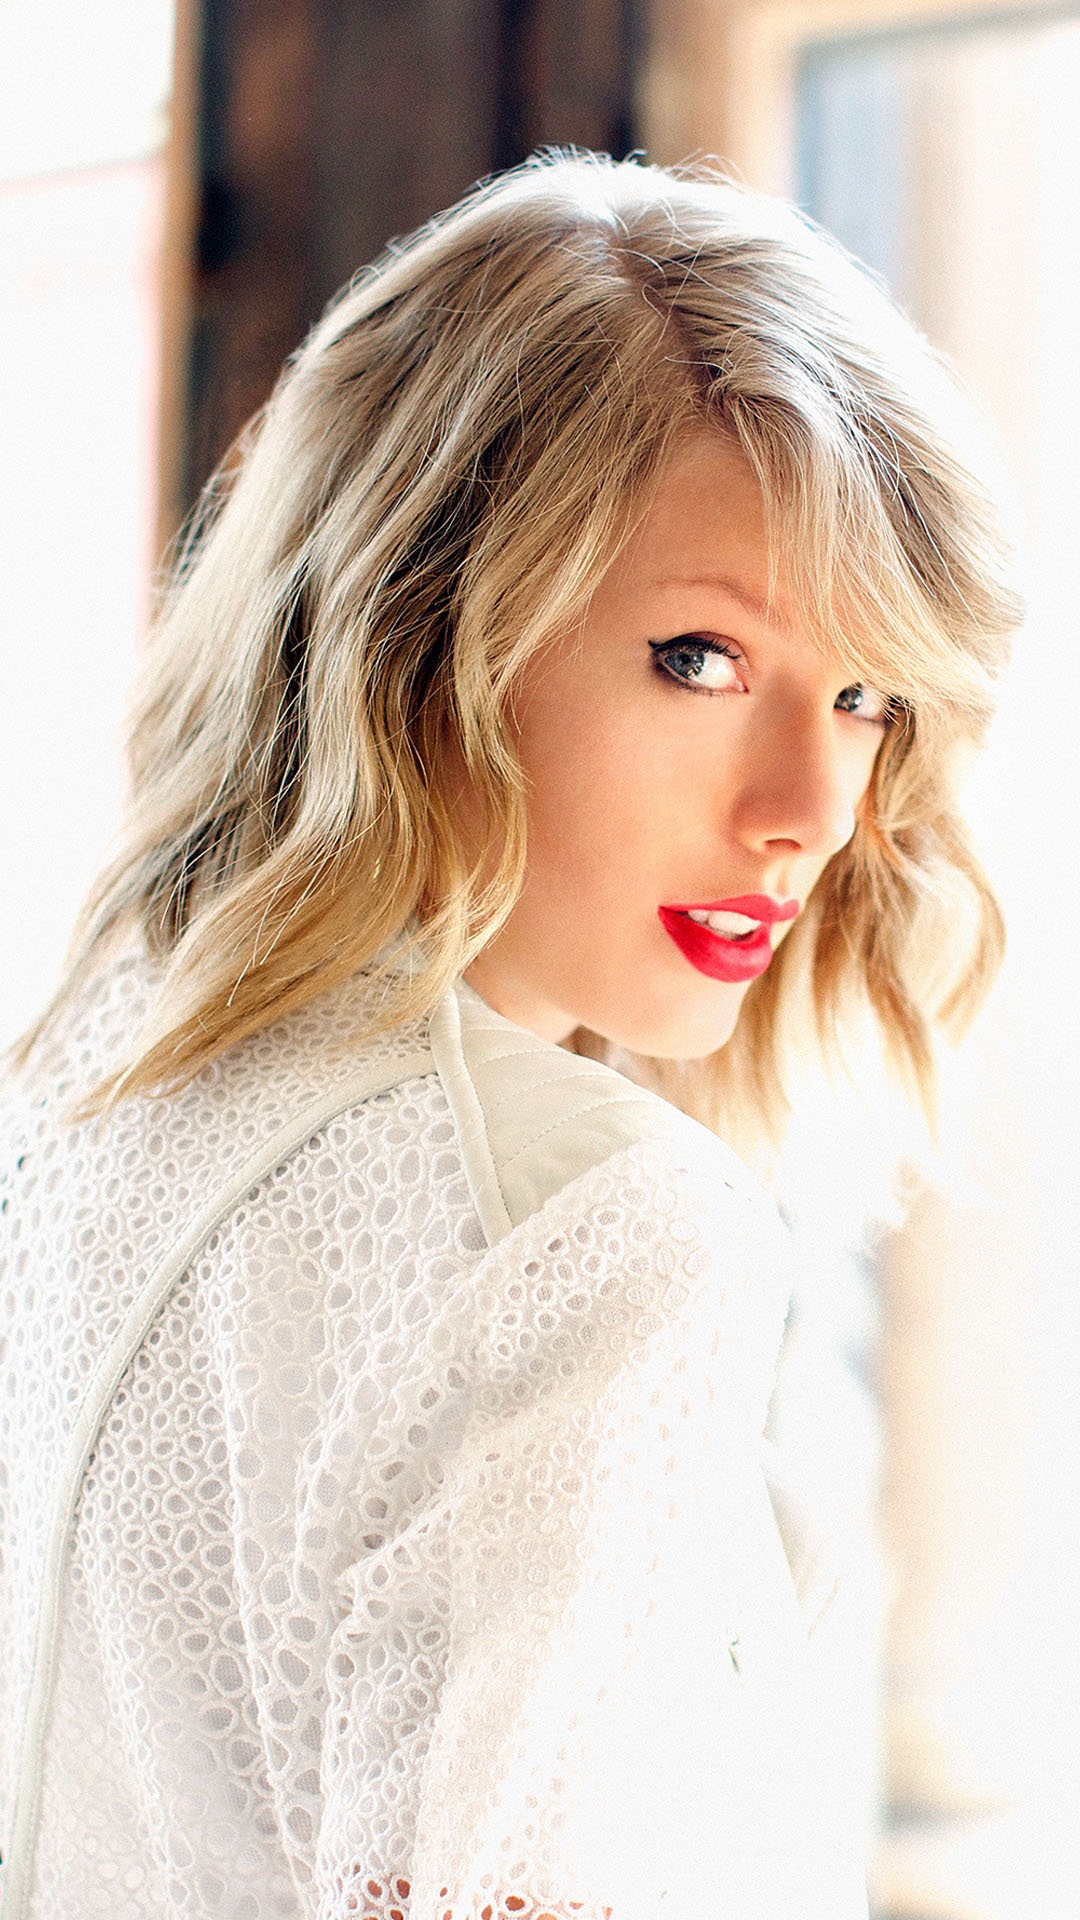 Wallpaper For Iphone 4s Black Taylor Swift In White Iphone 6 6 Plus And Iphone 5 4